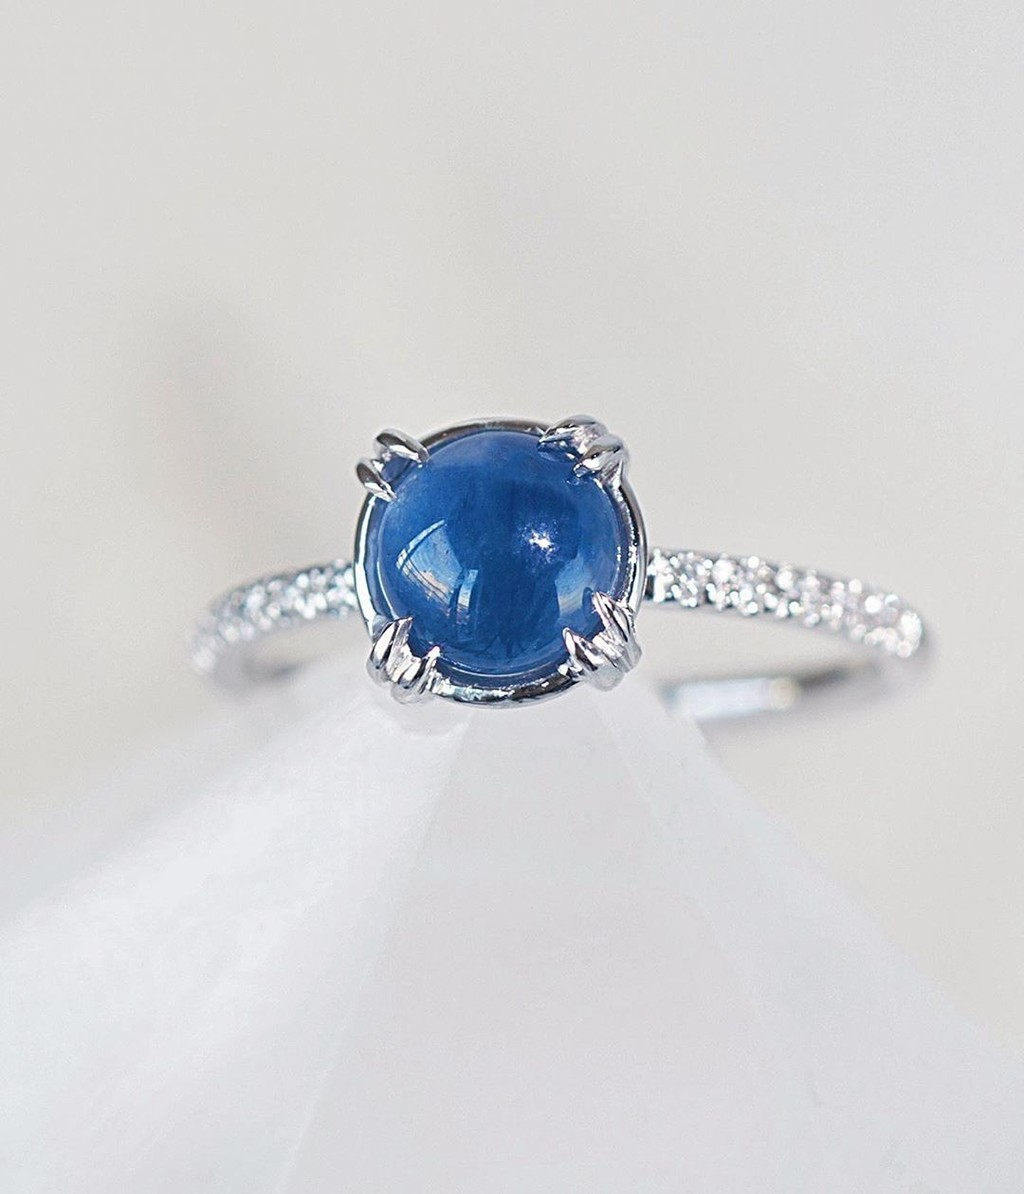 Am I cool enough for a Vintage Sapphire Cabochon Engagement Ring?